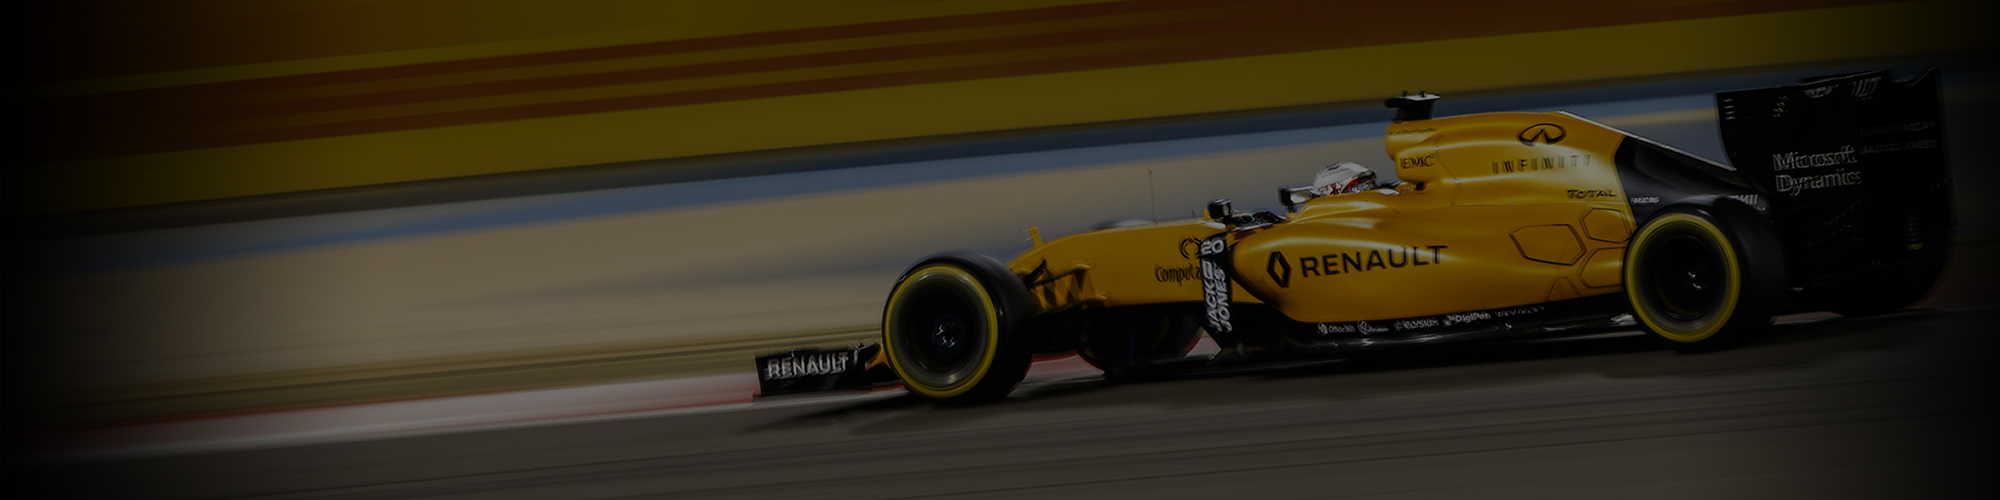 Renault Sport Formula One Team turns to Microsoft to help store and analyze data for an even faster race car.